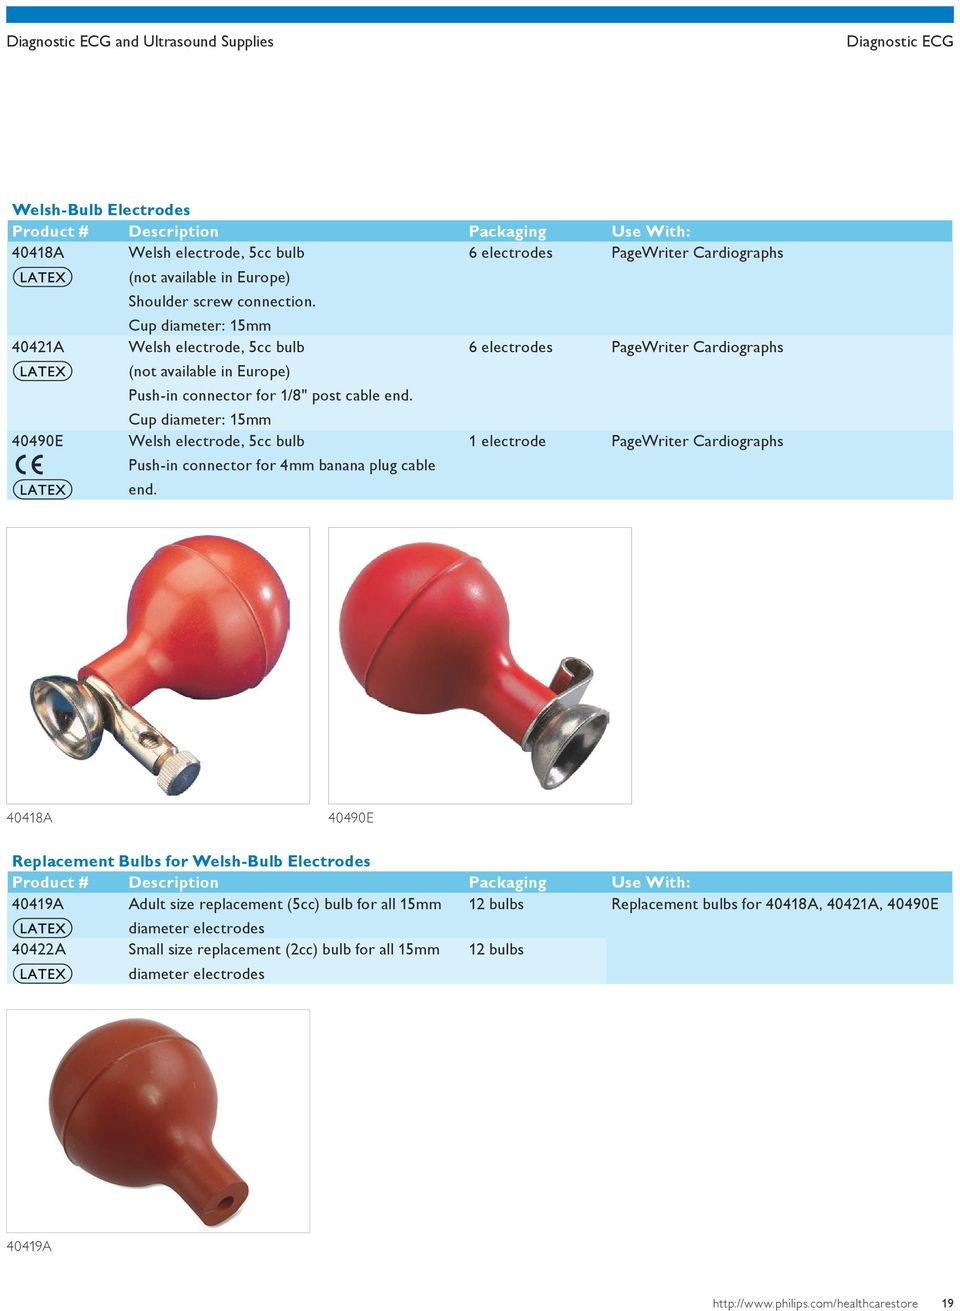 Diagnostic ECG and ultrasound supplies - PDF